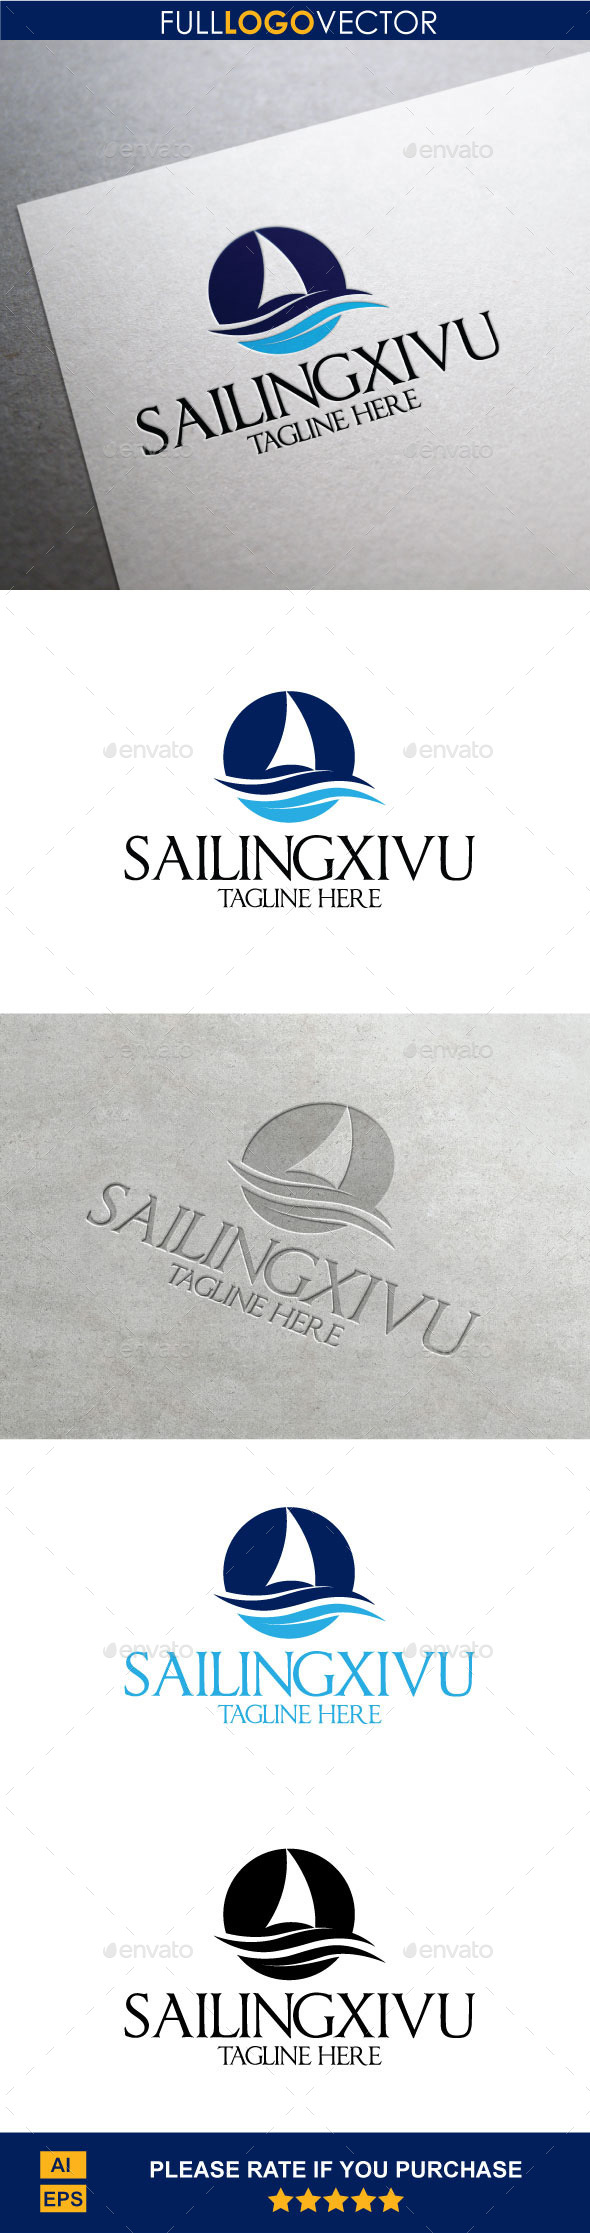 GraphicRiver Sailingxivu 9943301